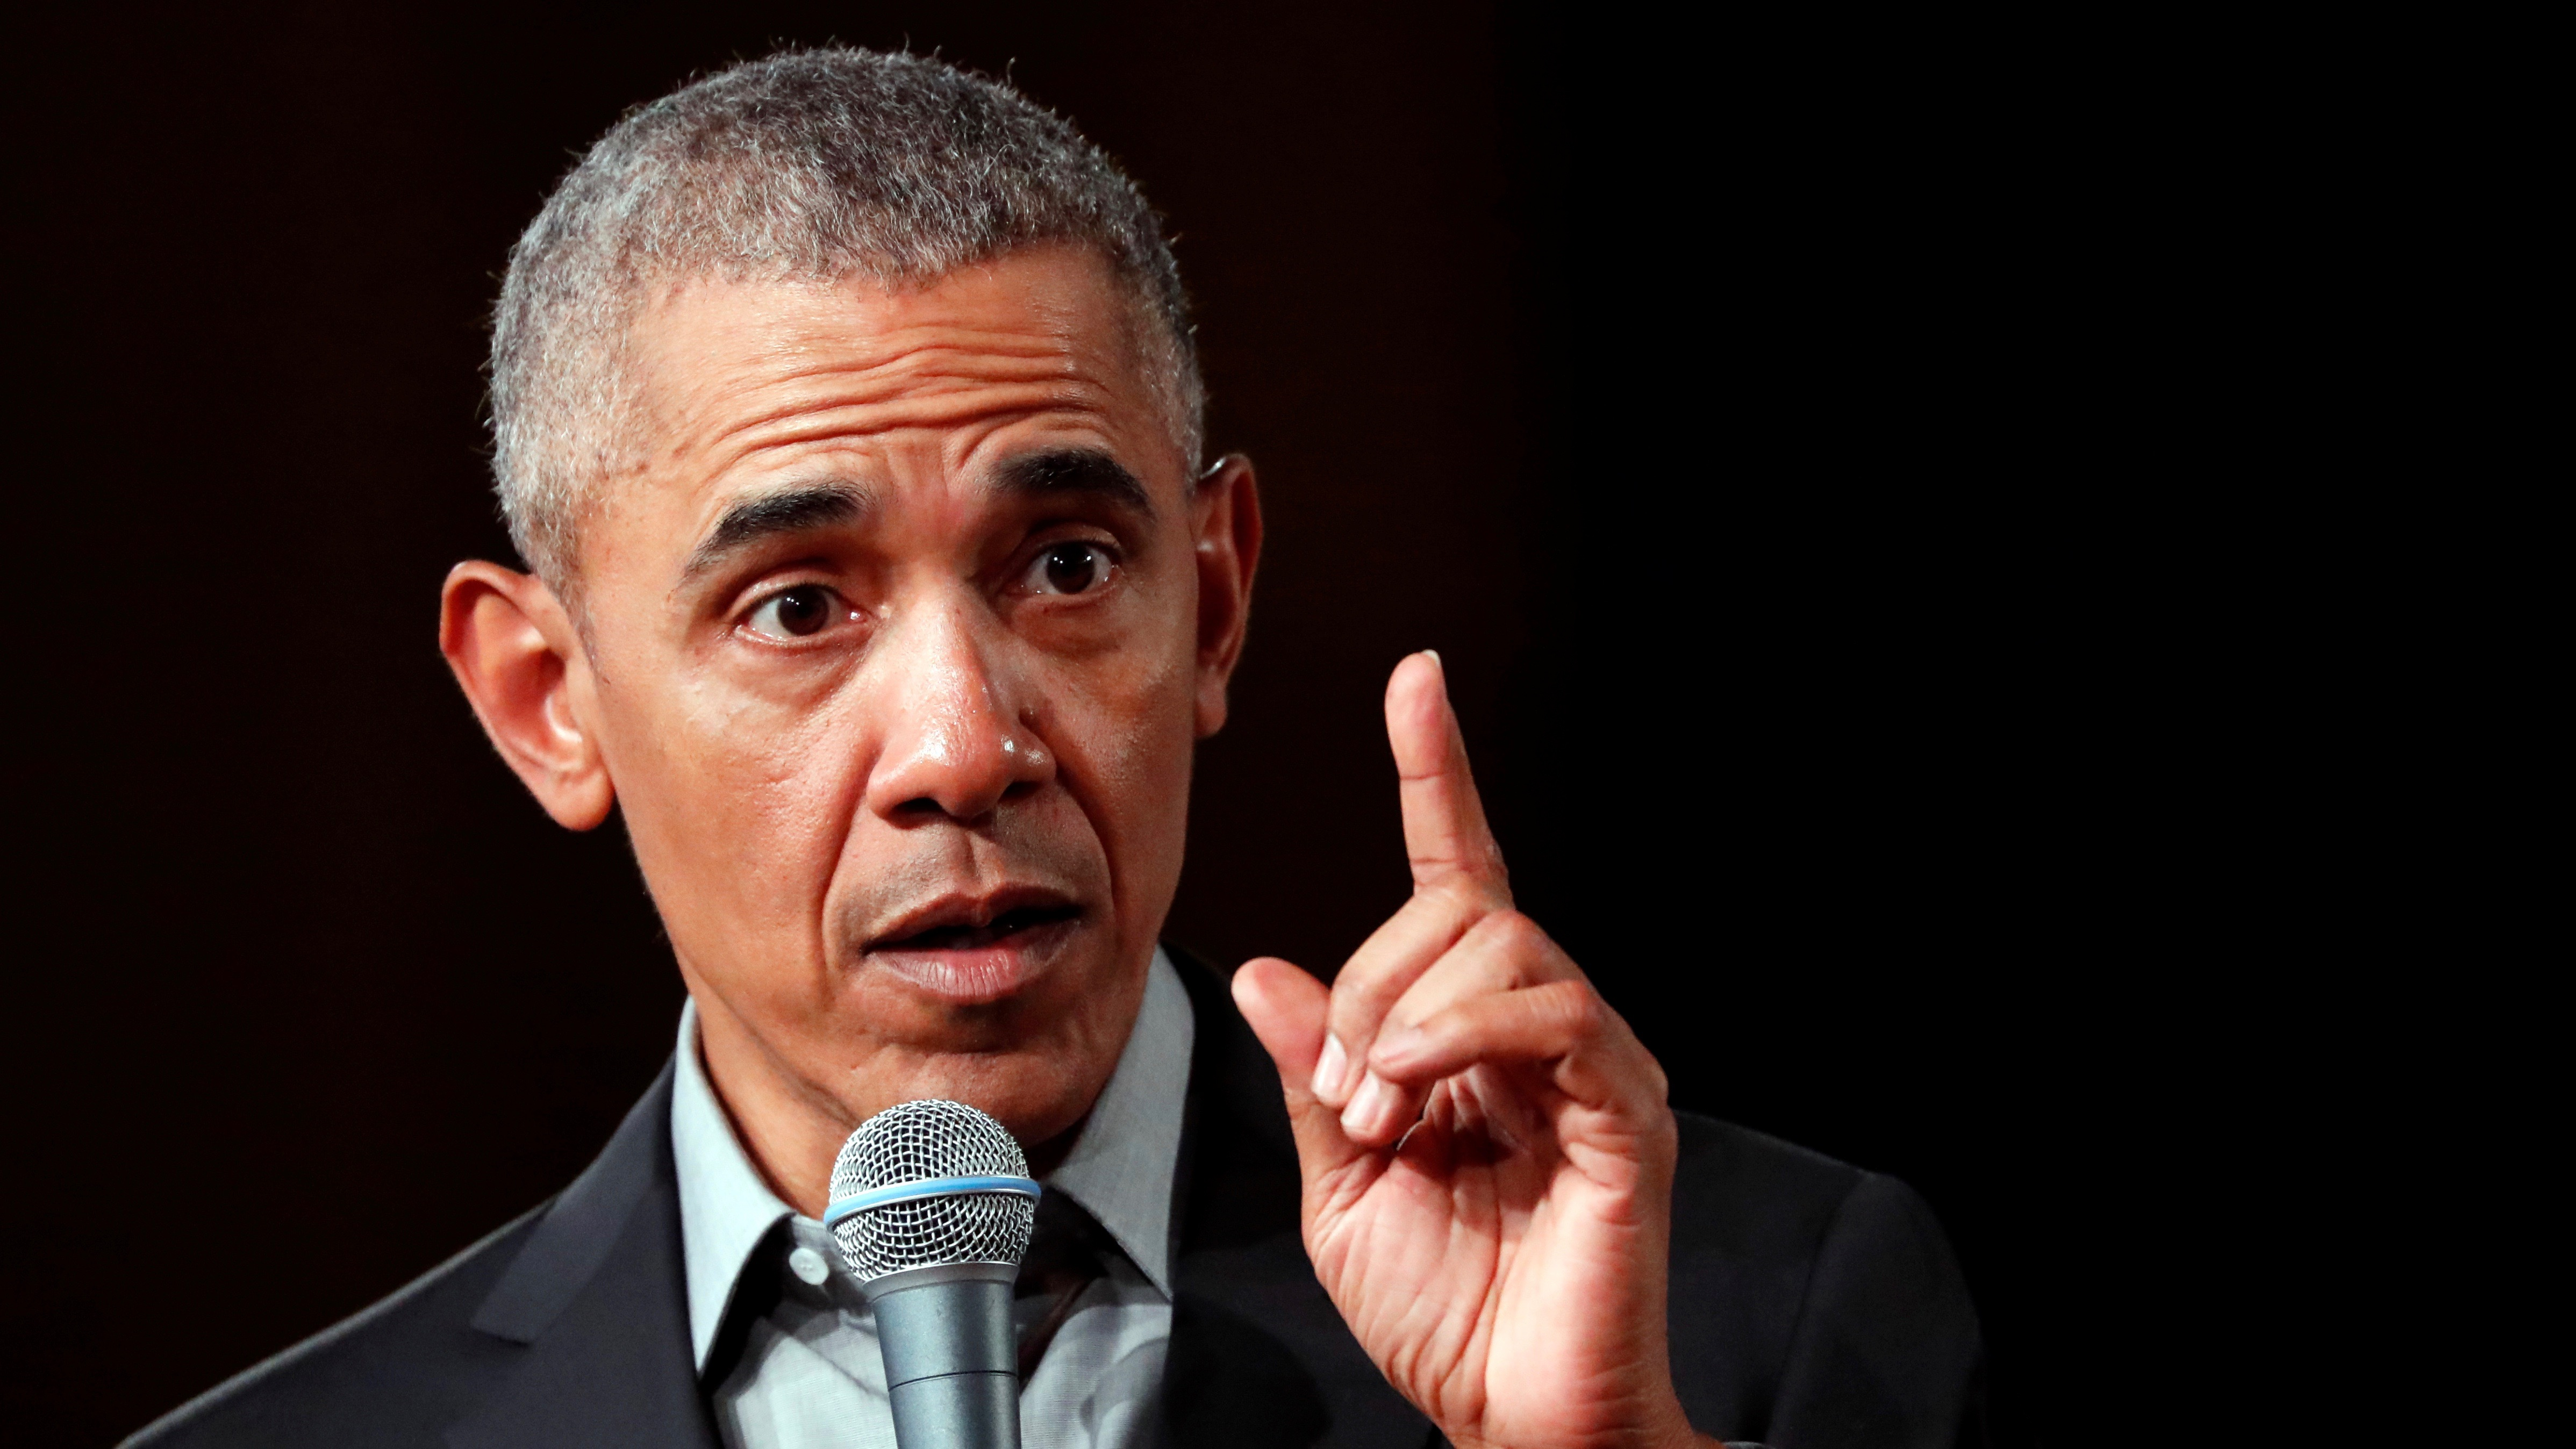 Image of Barack Obama in 2019 with his finger pointing up and microphone in one hand.